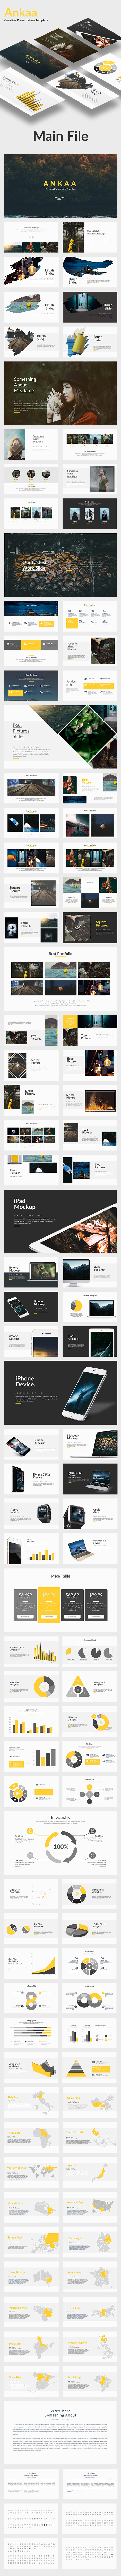 Ankaa - Creative Google Slide Template - Google Slides Presentation Templates